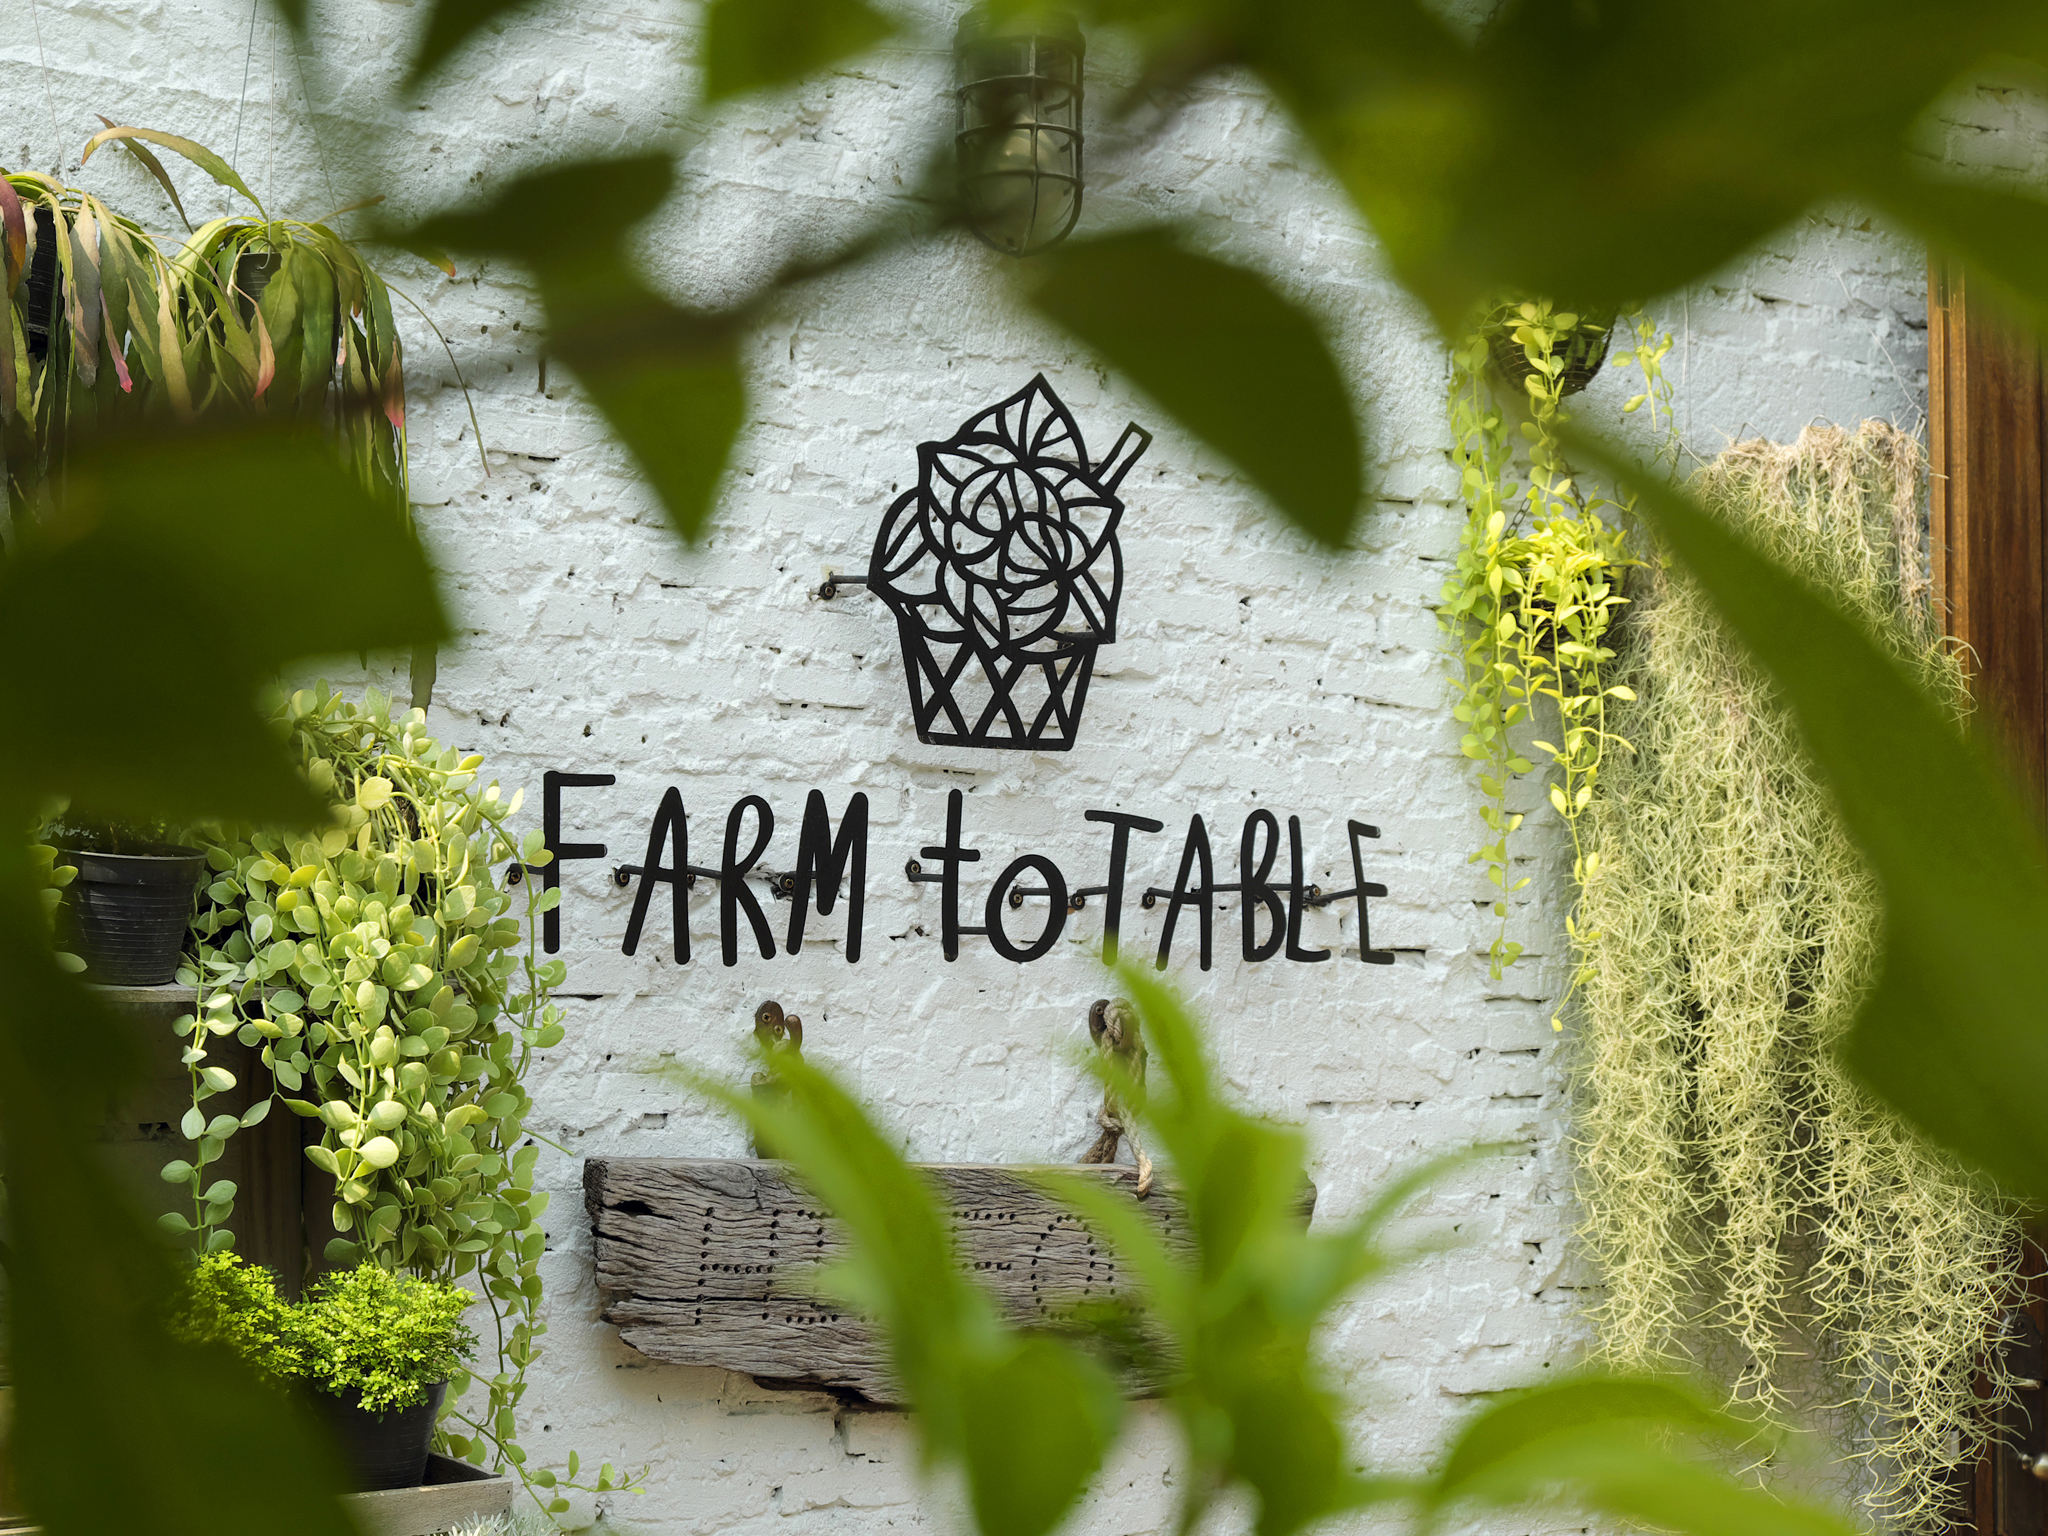 At Farm to Table, Hideout in Bangkok